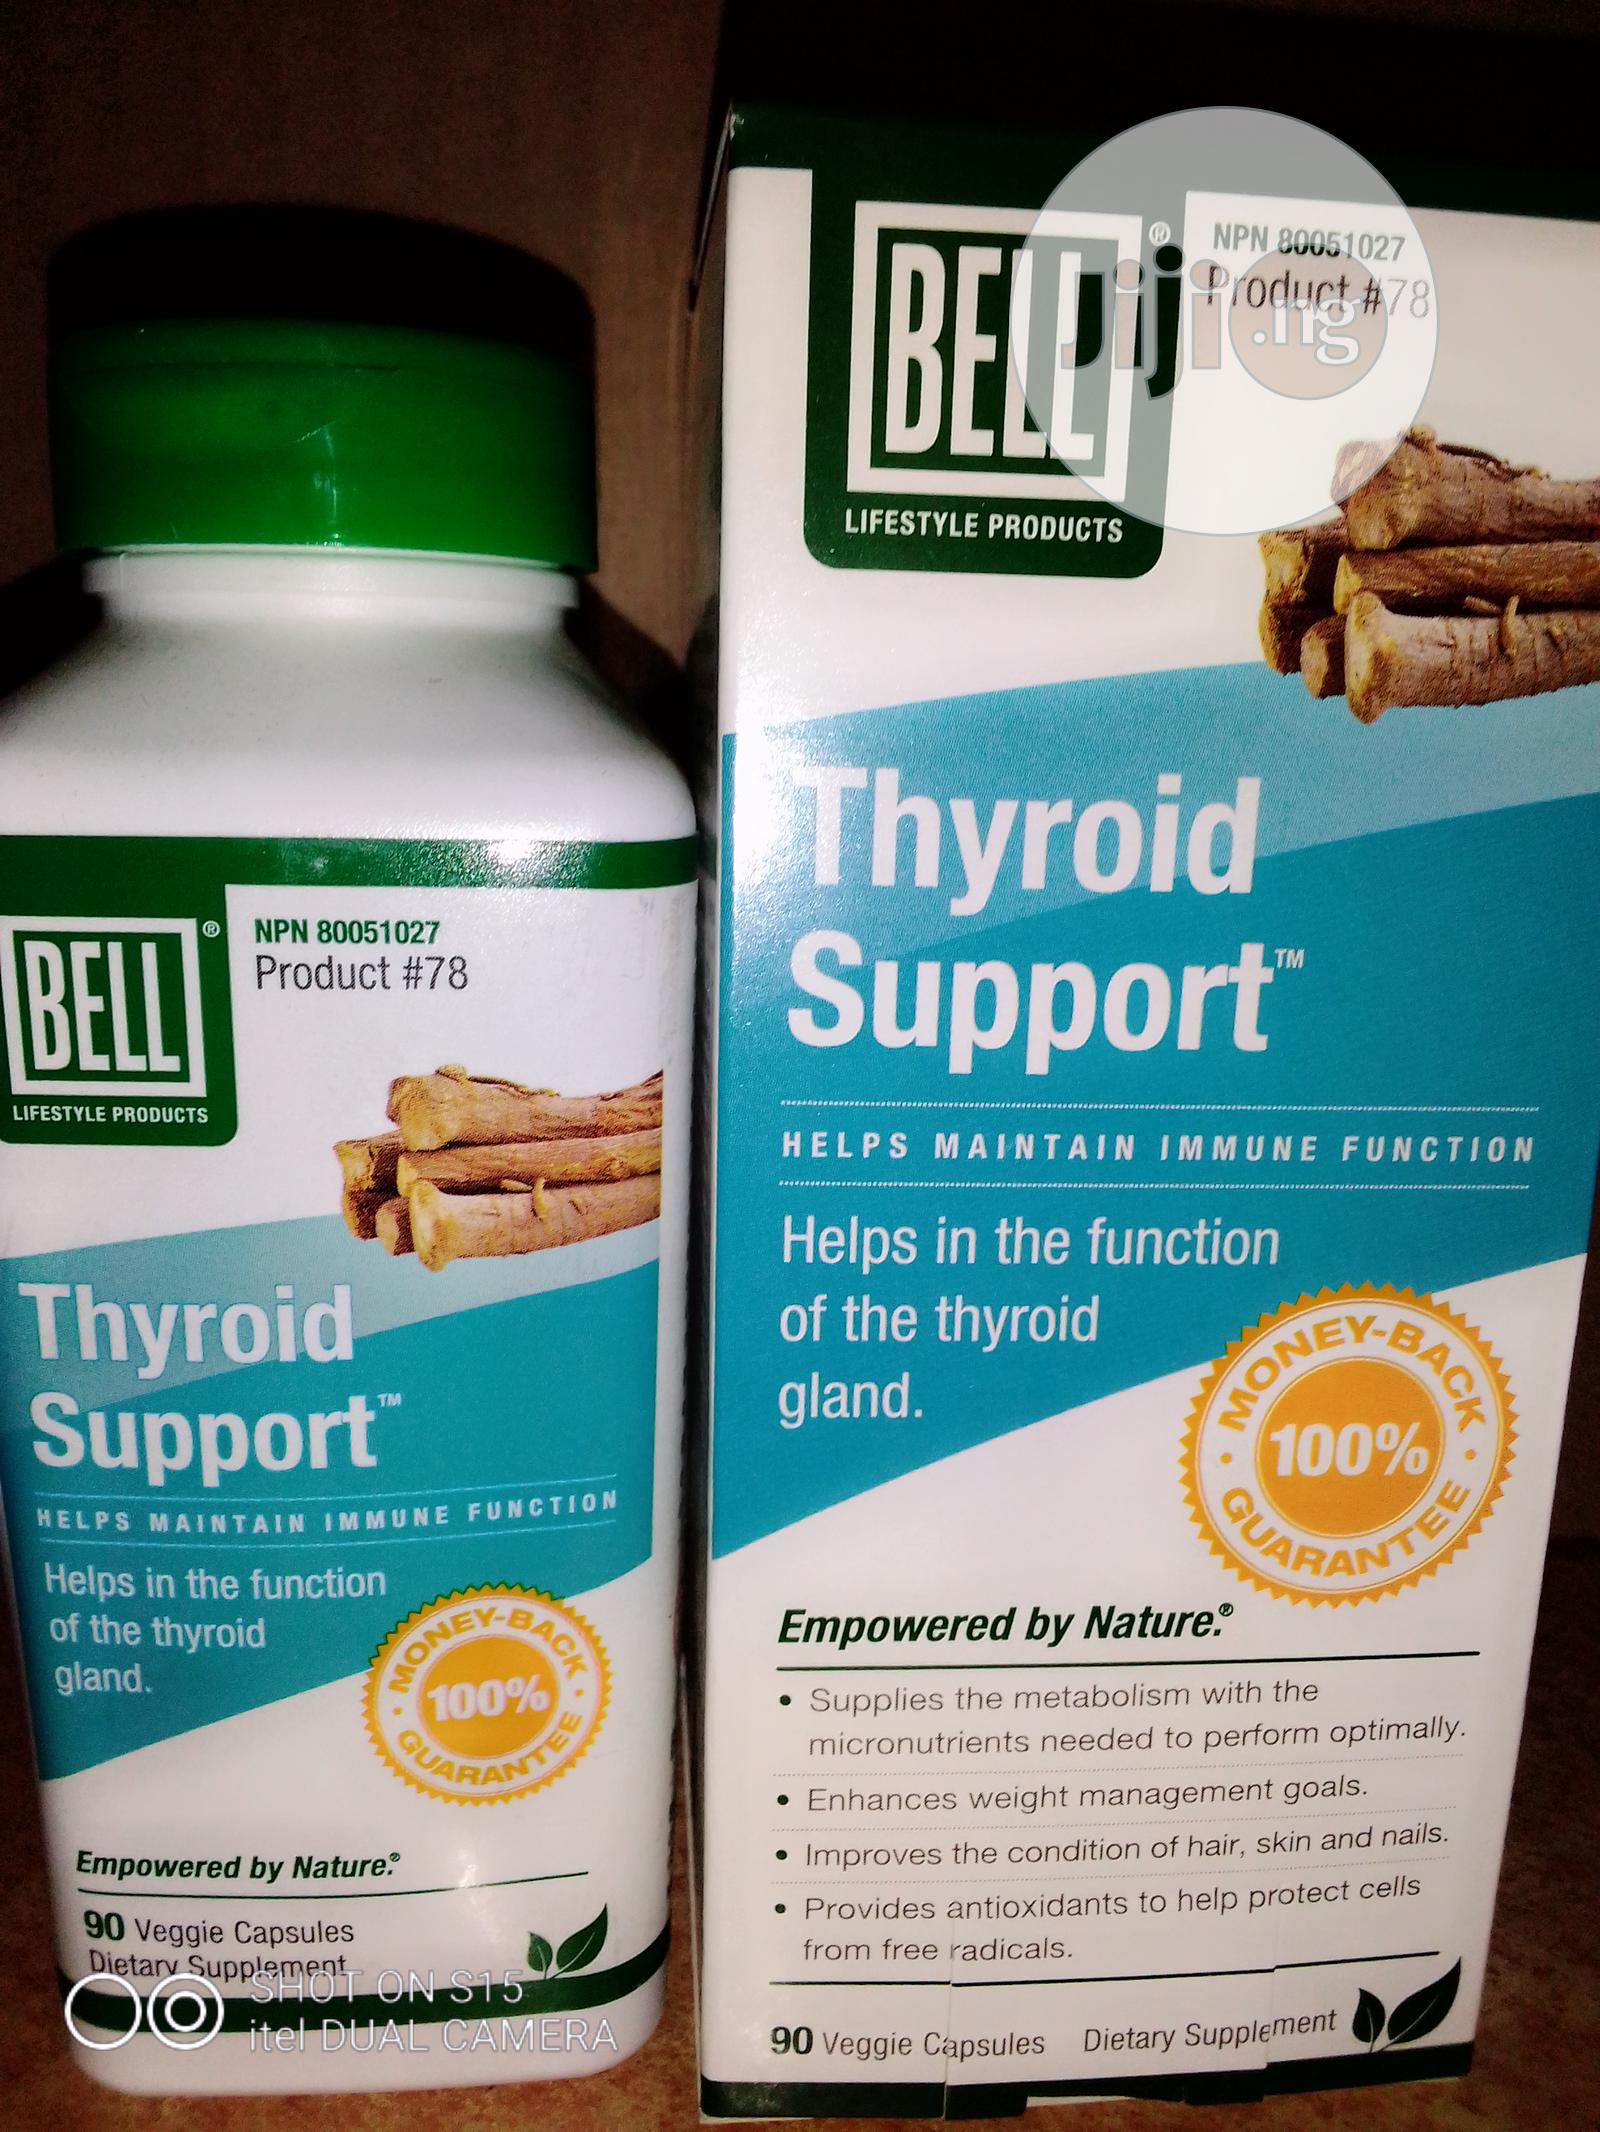 BELL THYROID SUPPORT to Treat Goiter and All Thyroid Issues.